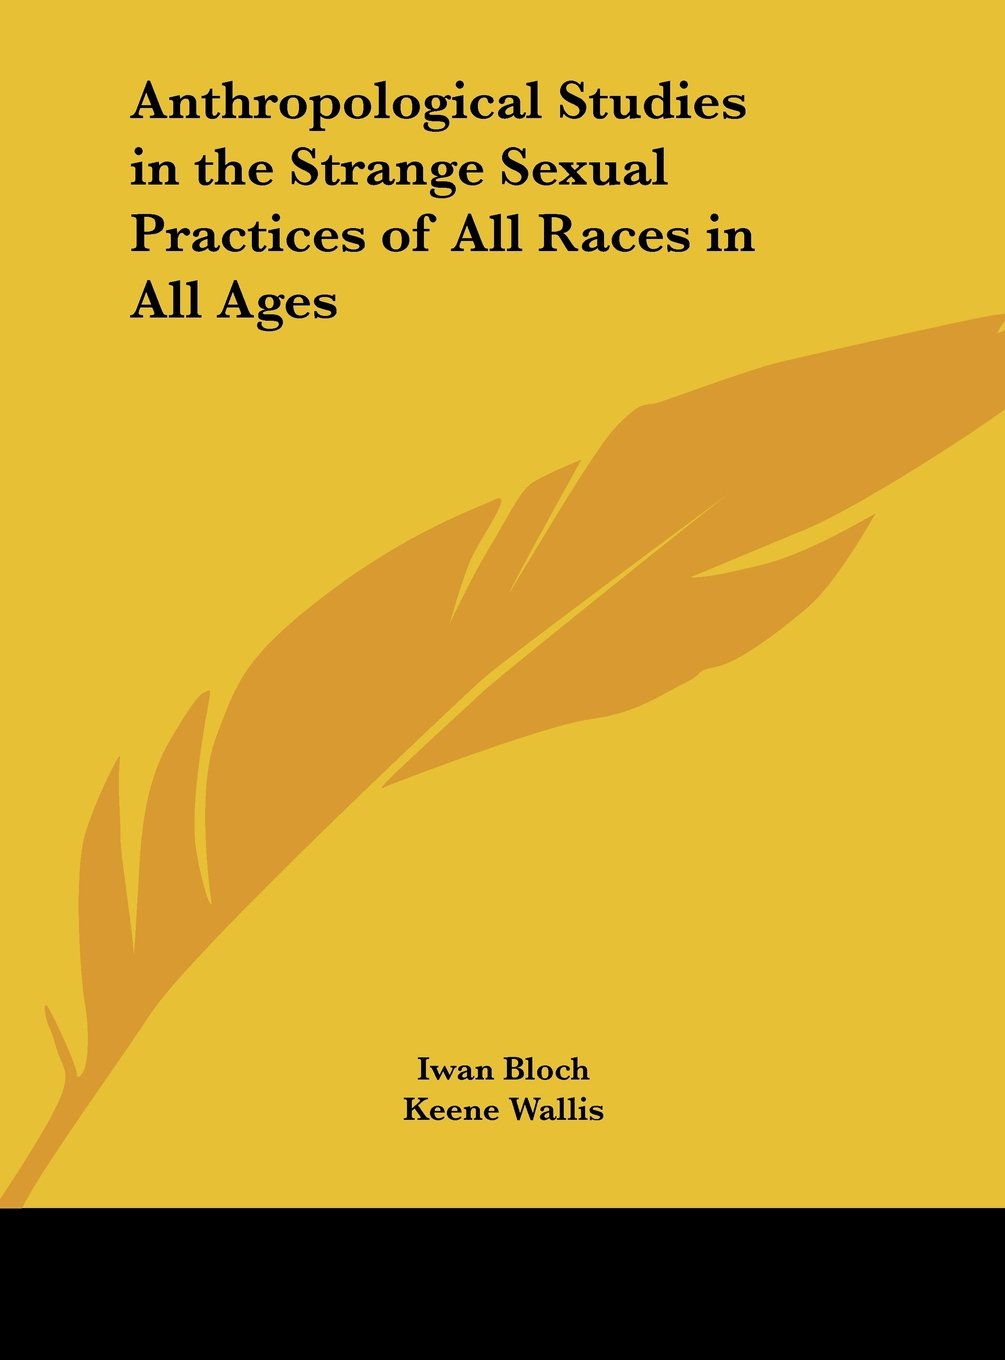 Download Anthropological Studies in the Strange Sexual Practices of All Races in All Ages Text fb2 book